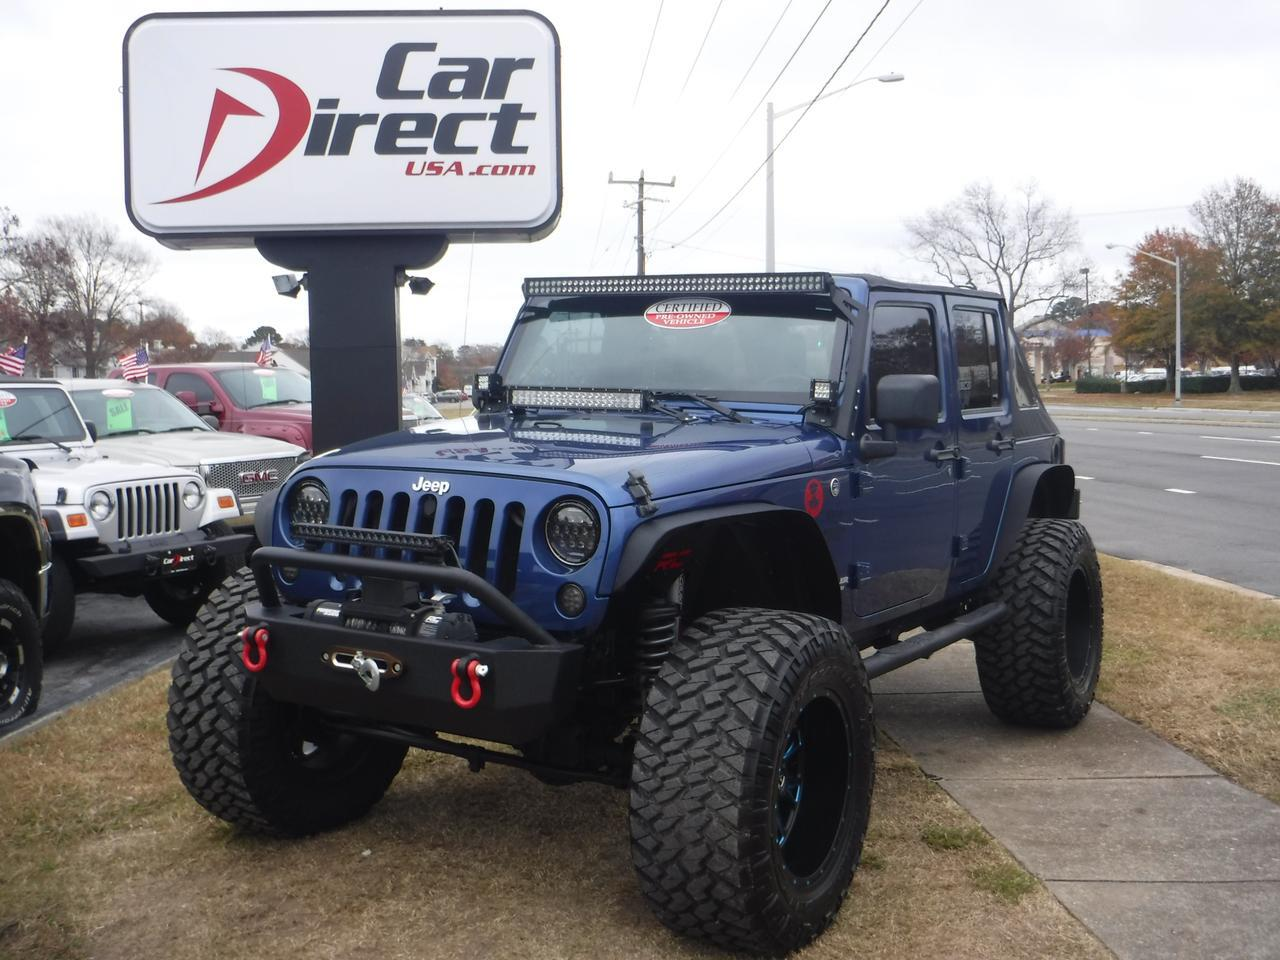 2009 jeep wrangler unlimited sahara 4x4 rough country. Black Bedroom Furniture Sets. Home Design Ideas